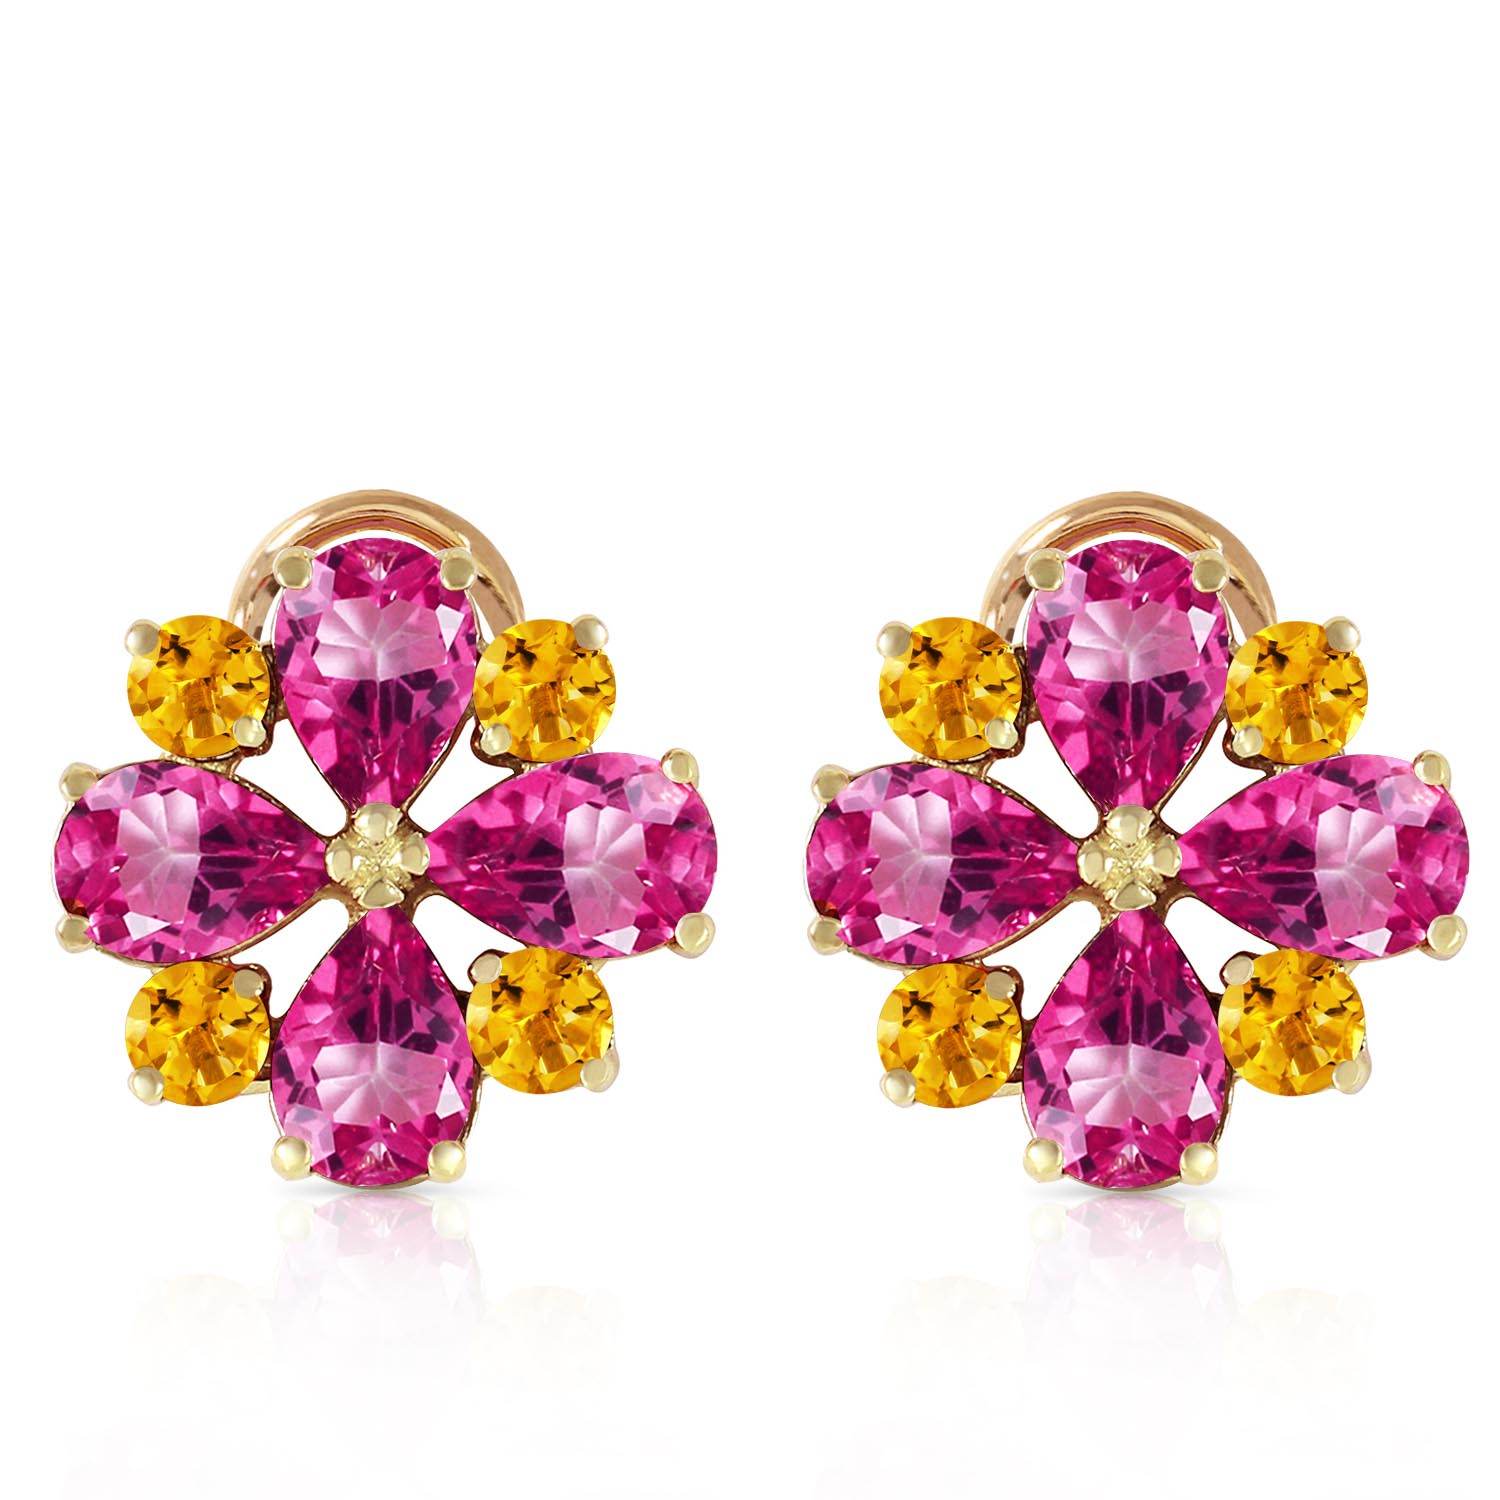 Pink Topaz and Citrine Sunflower Stud French Clip Earrings 4.85ctw in 9ct Gold